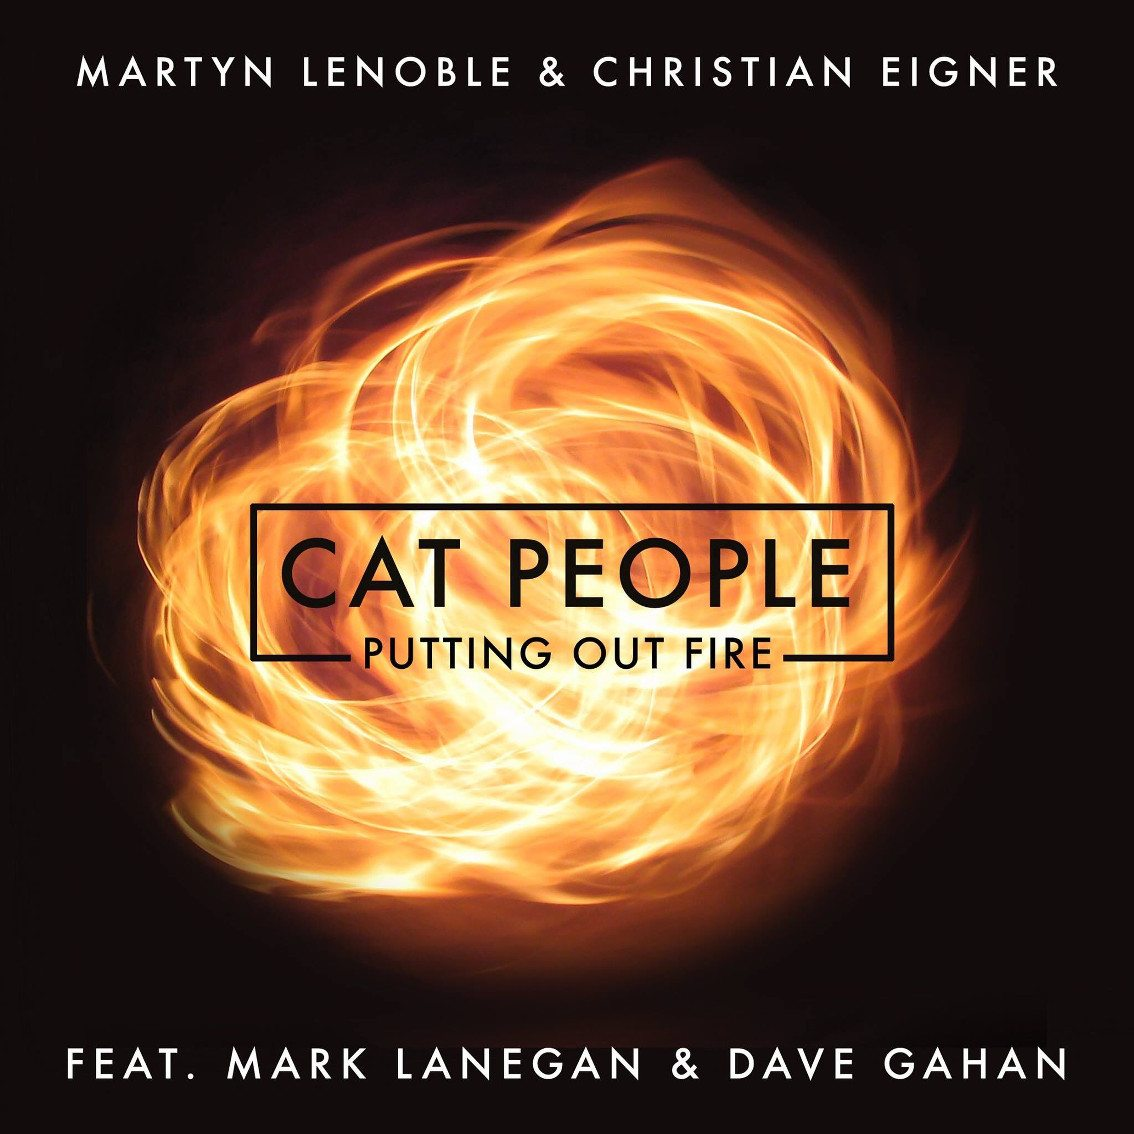 David Gahan (Depeche Mode) records David Bowie cover for charity together with Mark Lanegan (The Screaming Trees), Martyn LeNoble and Christian Eigner